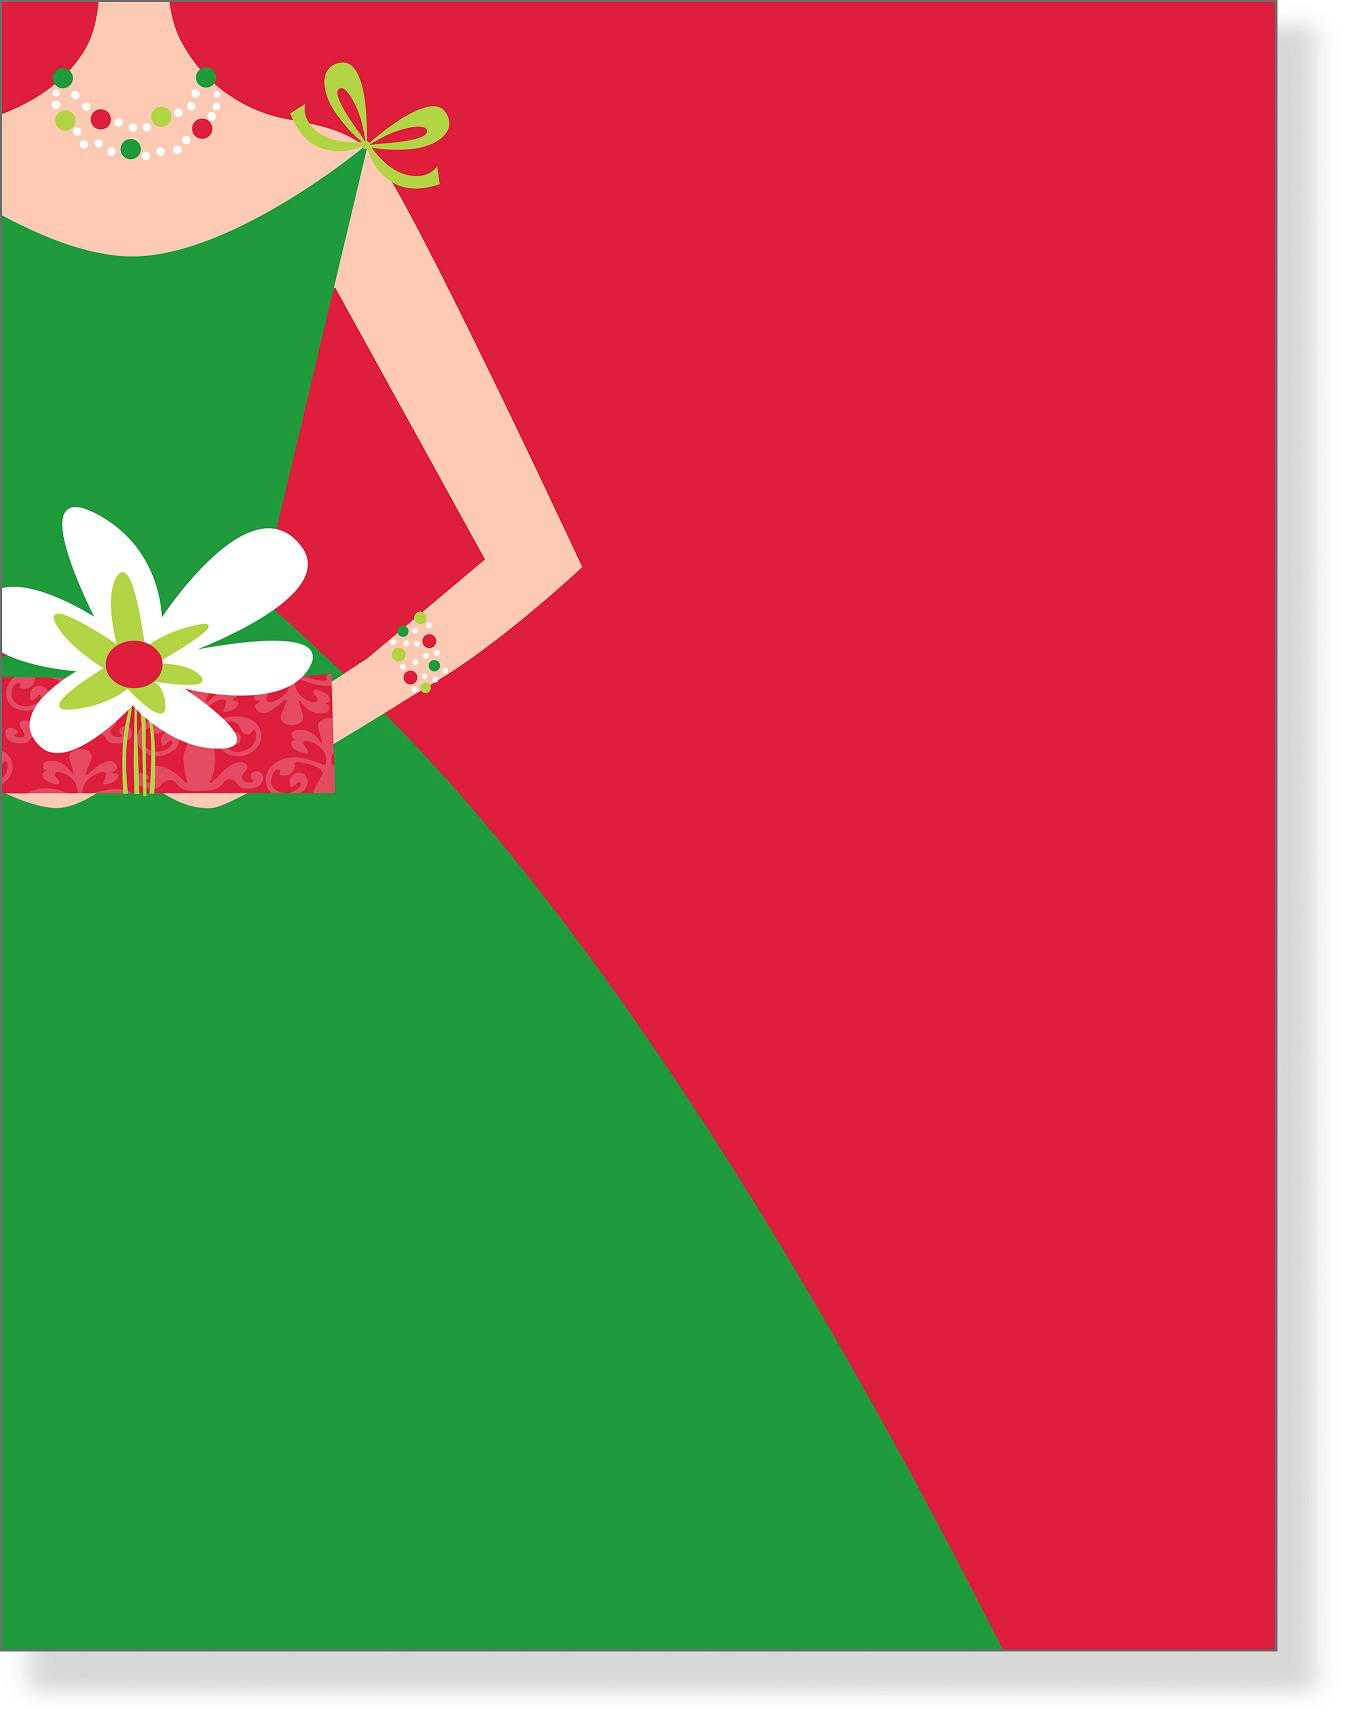 Christmas Stationery - Christmas stationery papers for special events